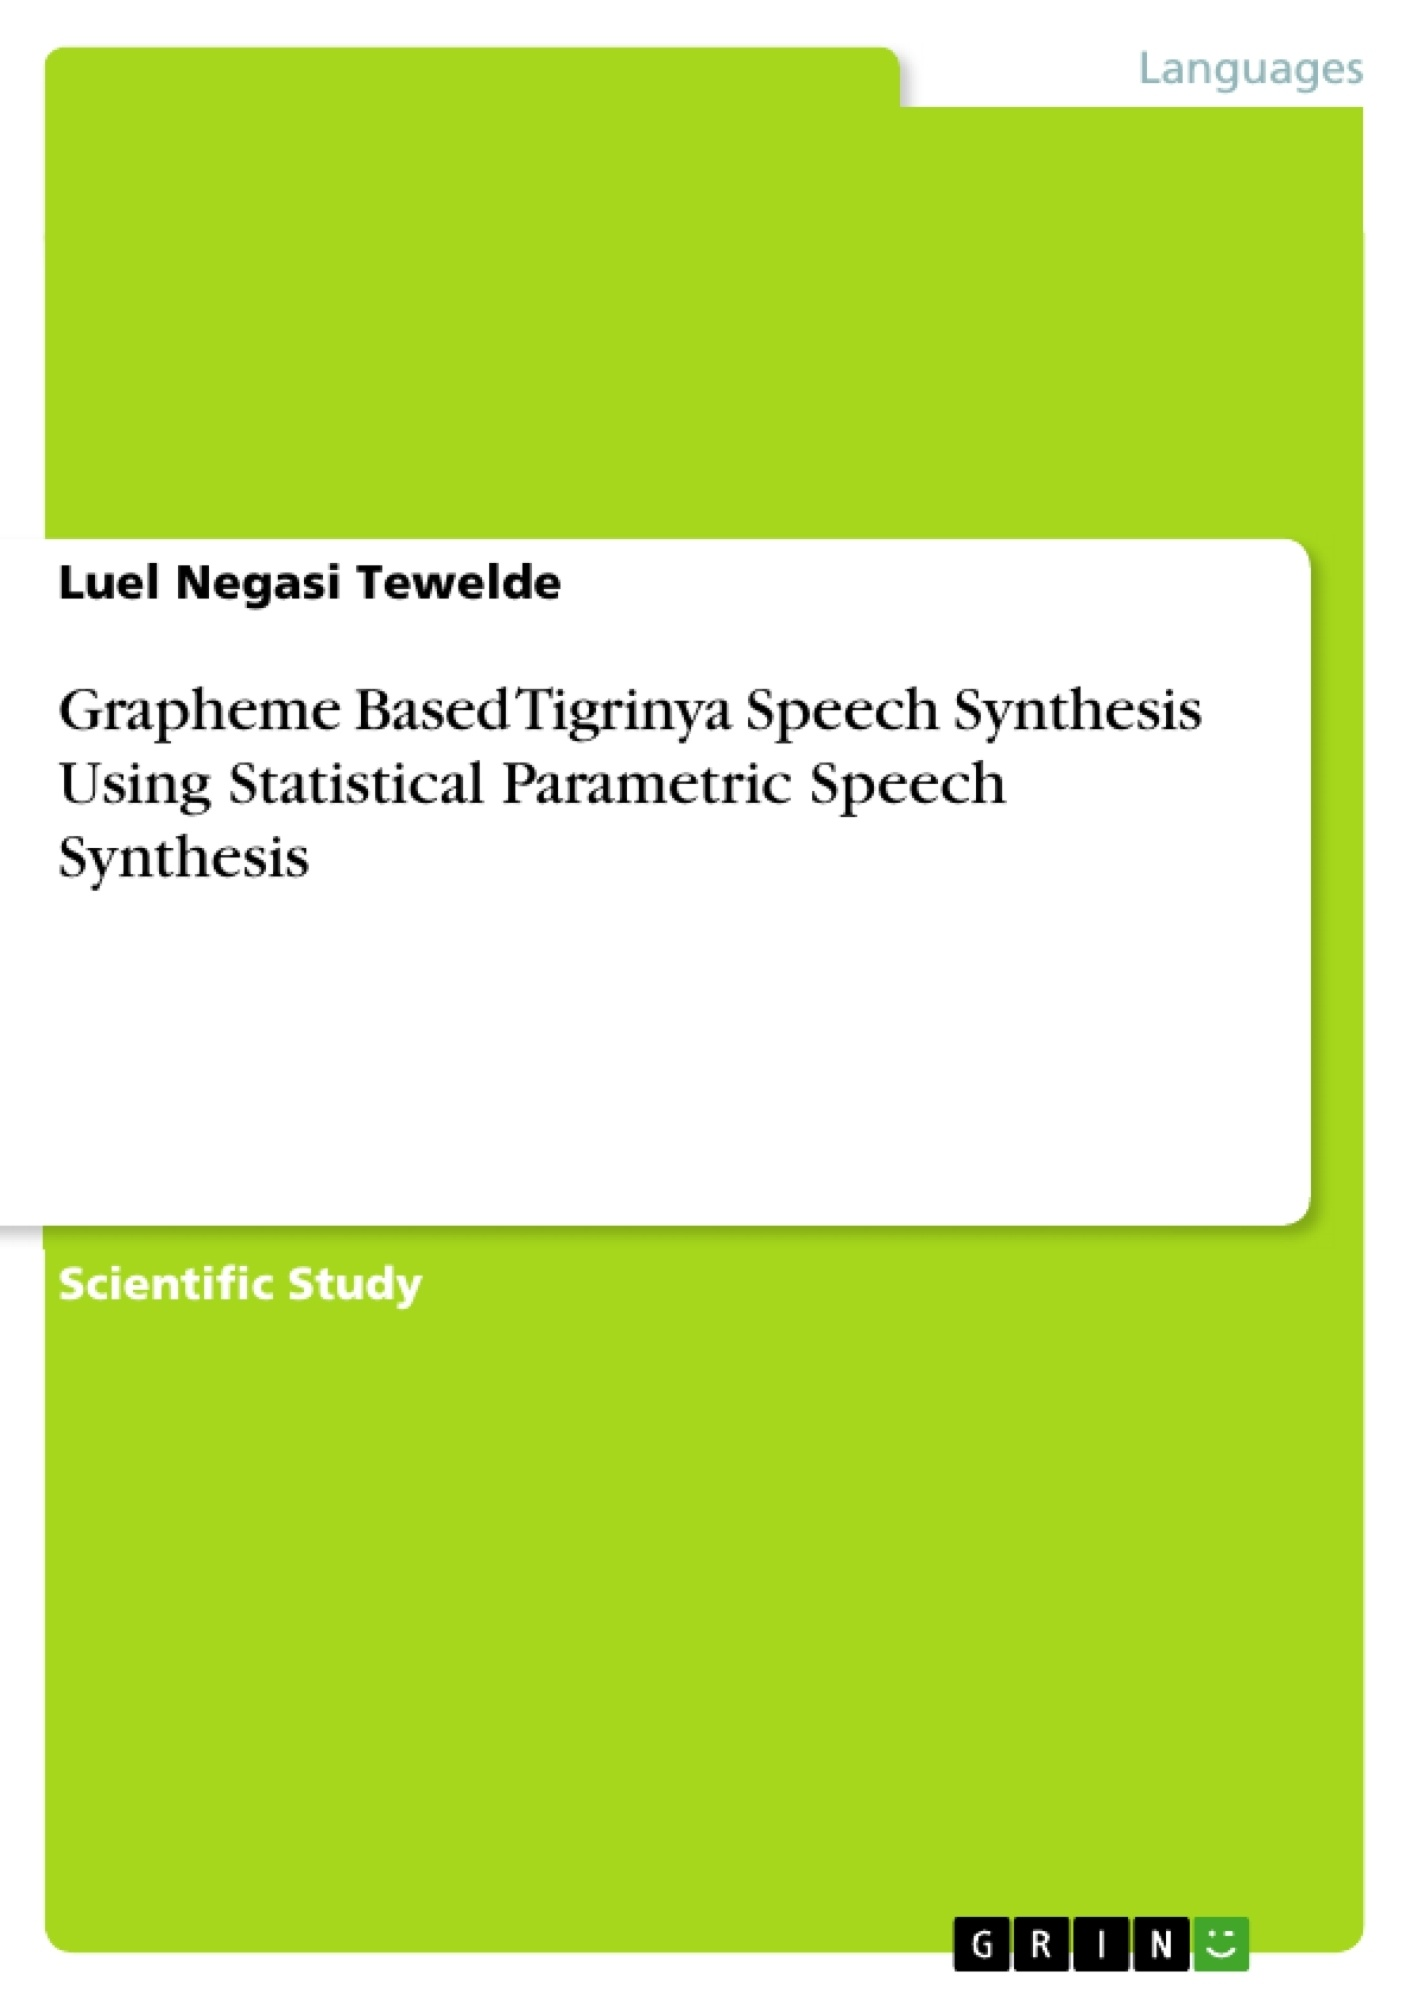 Title: Grapheme Based Tigrinya Speech Synthesis Using Statistical Parametric Speech Synthesis